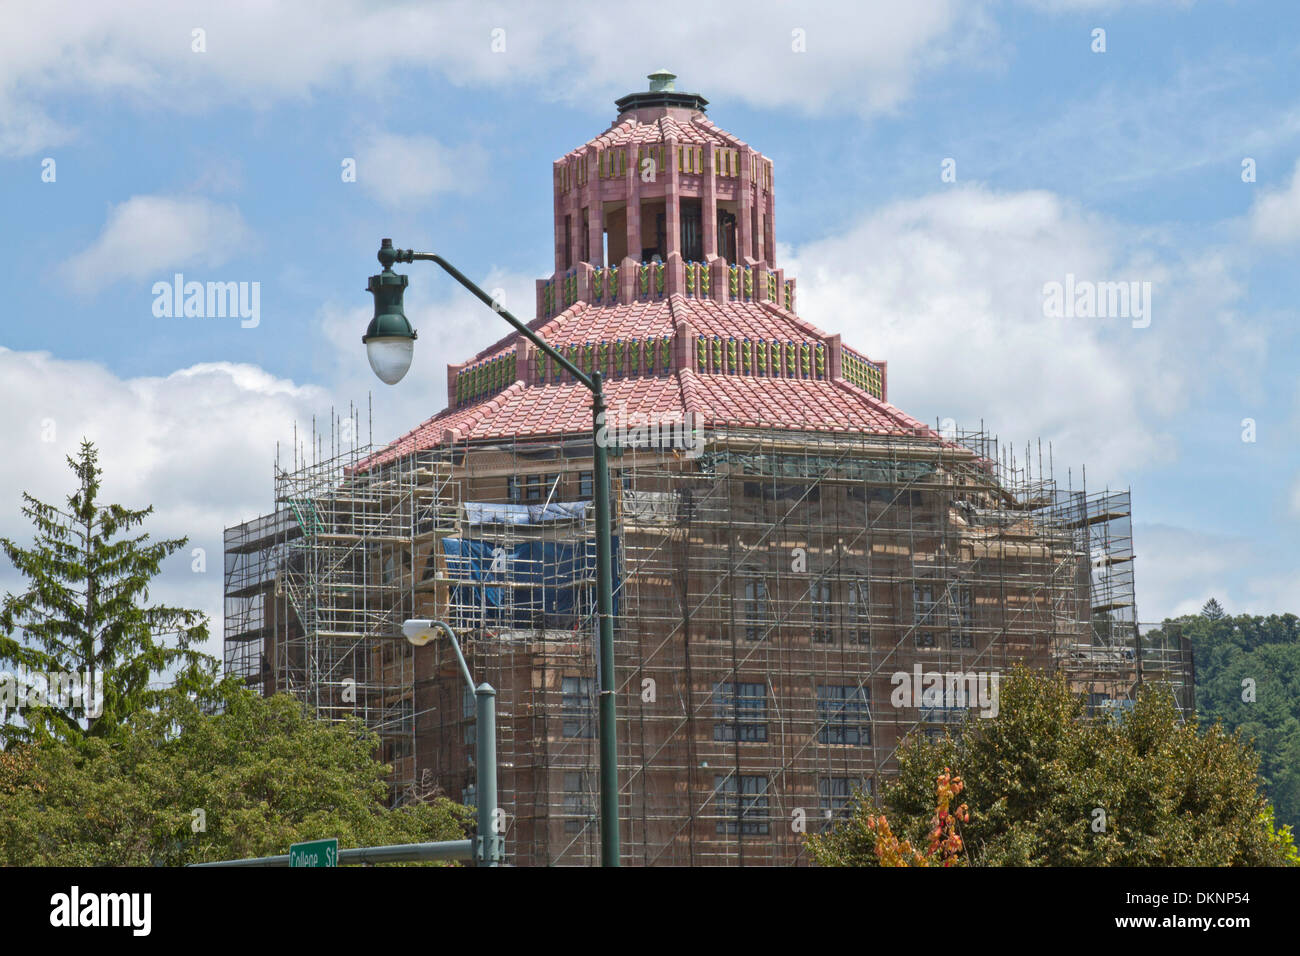 Downtown Asheville City Hall building under renovation is bristling with construction scaffolding - Stock Image